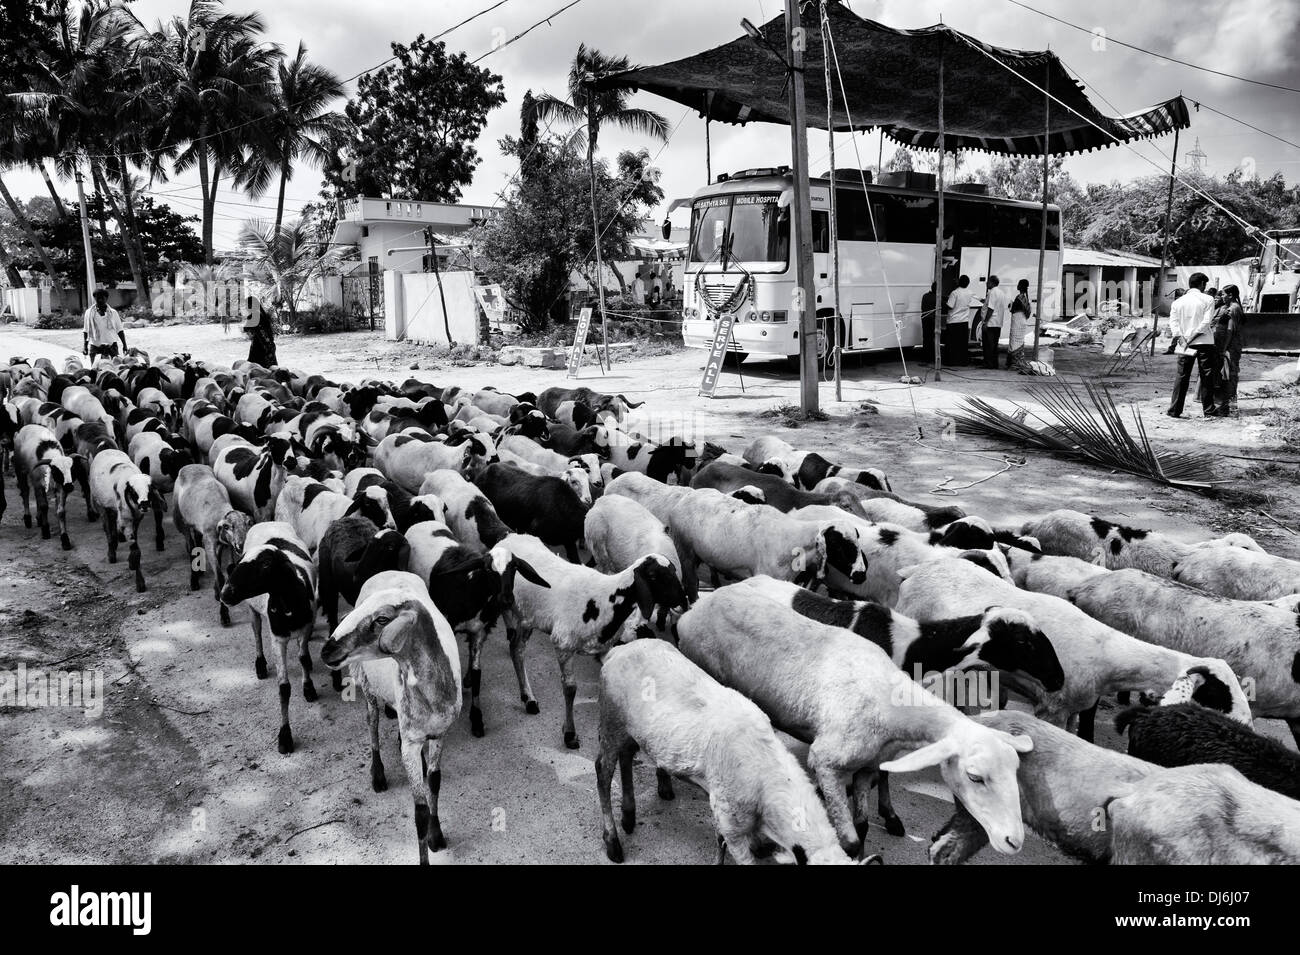 Herd of goats walking past the Sri Sathya Sai Baba mobile outreach hospital bus in a rural Indian village. Andhra Pradesh, India - Stock Image